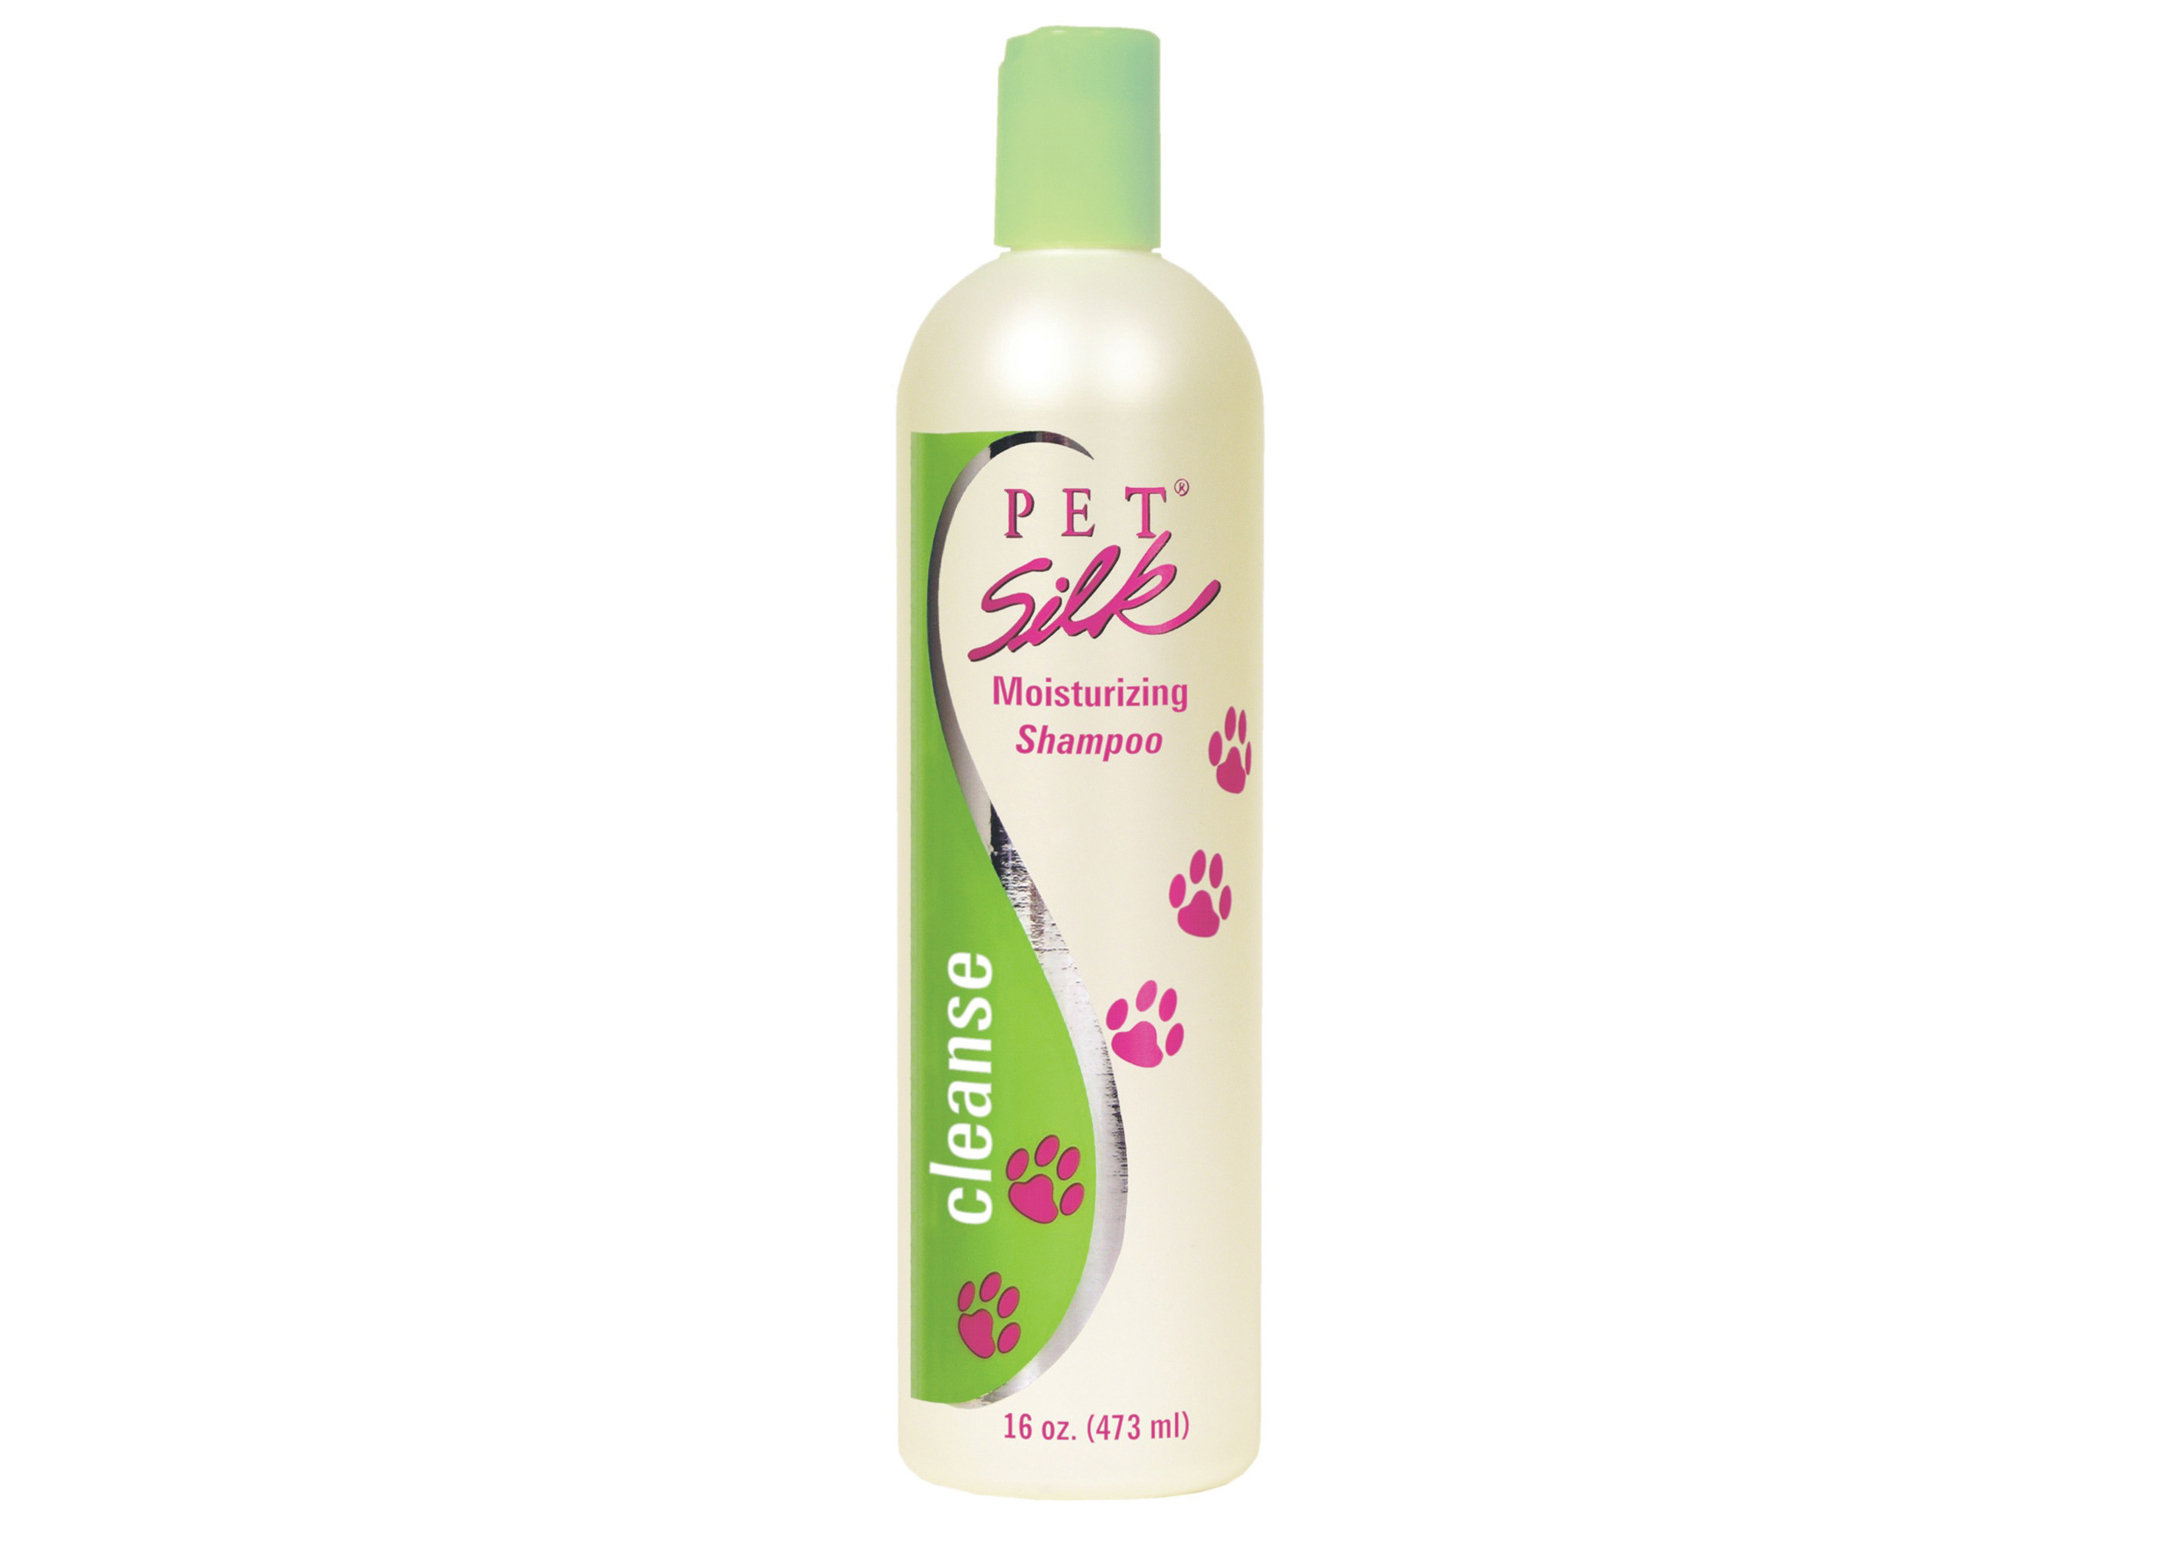 Pet Silk Moisurizing Shampoo For Dogs, Cats And Horses